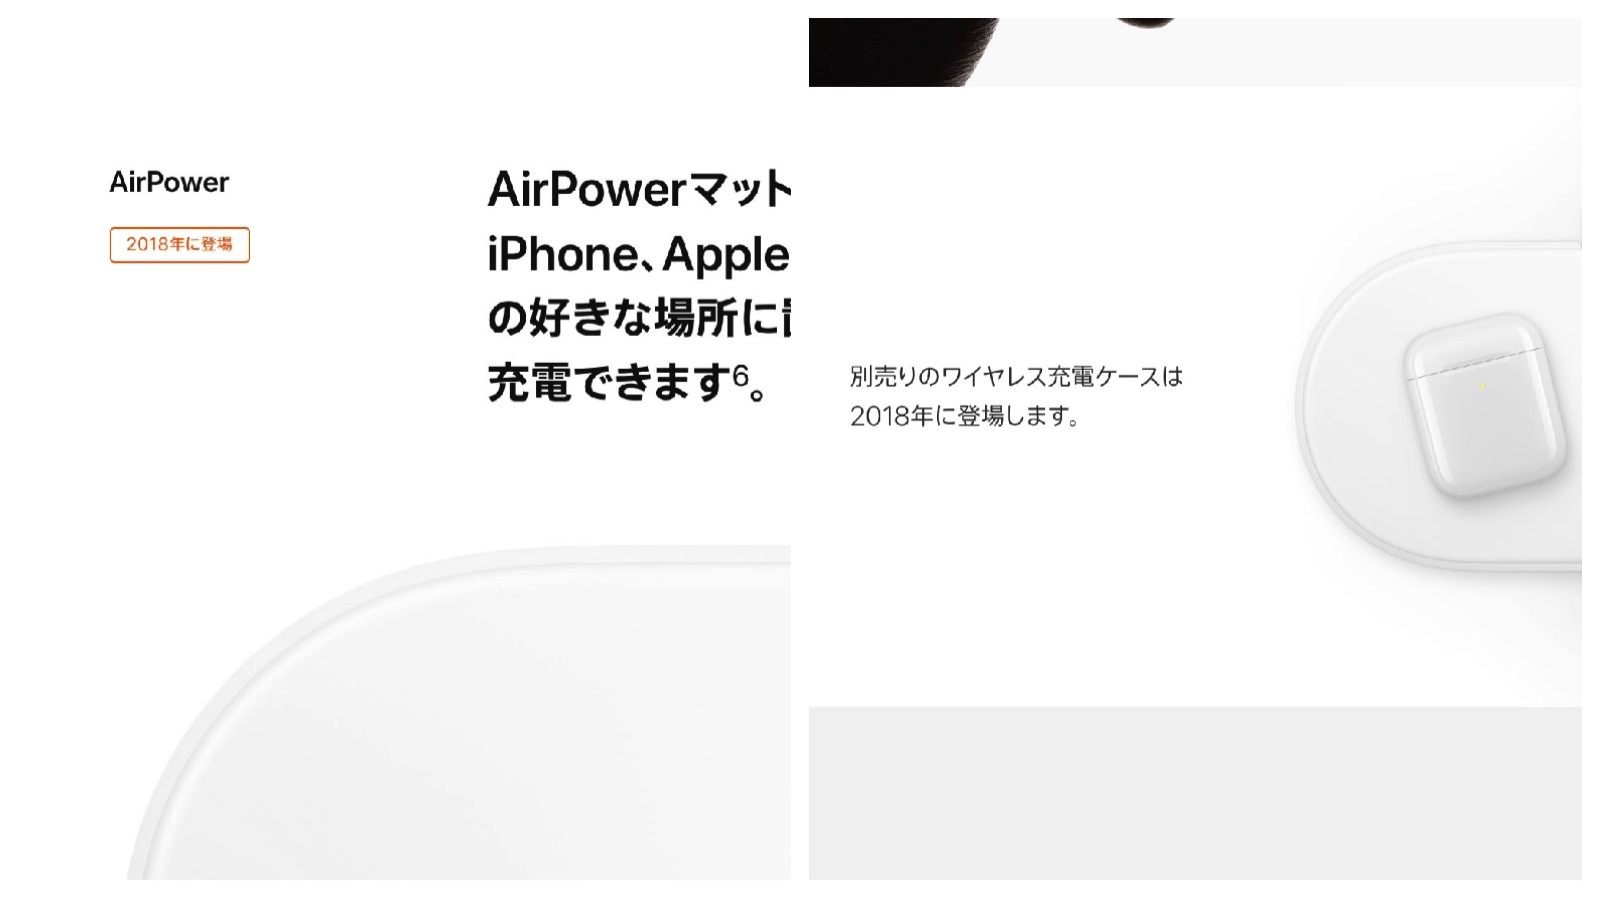 AirPods and AirPower